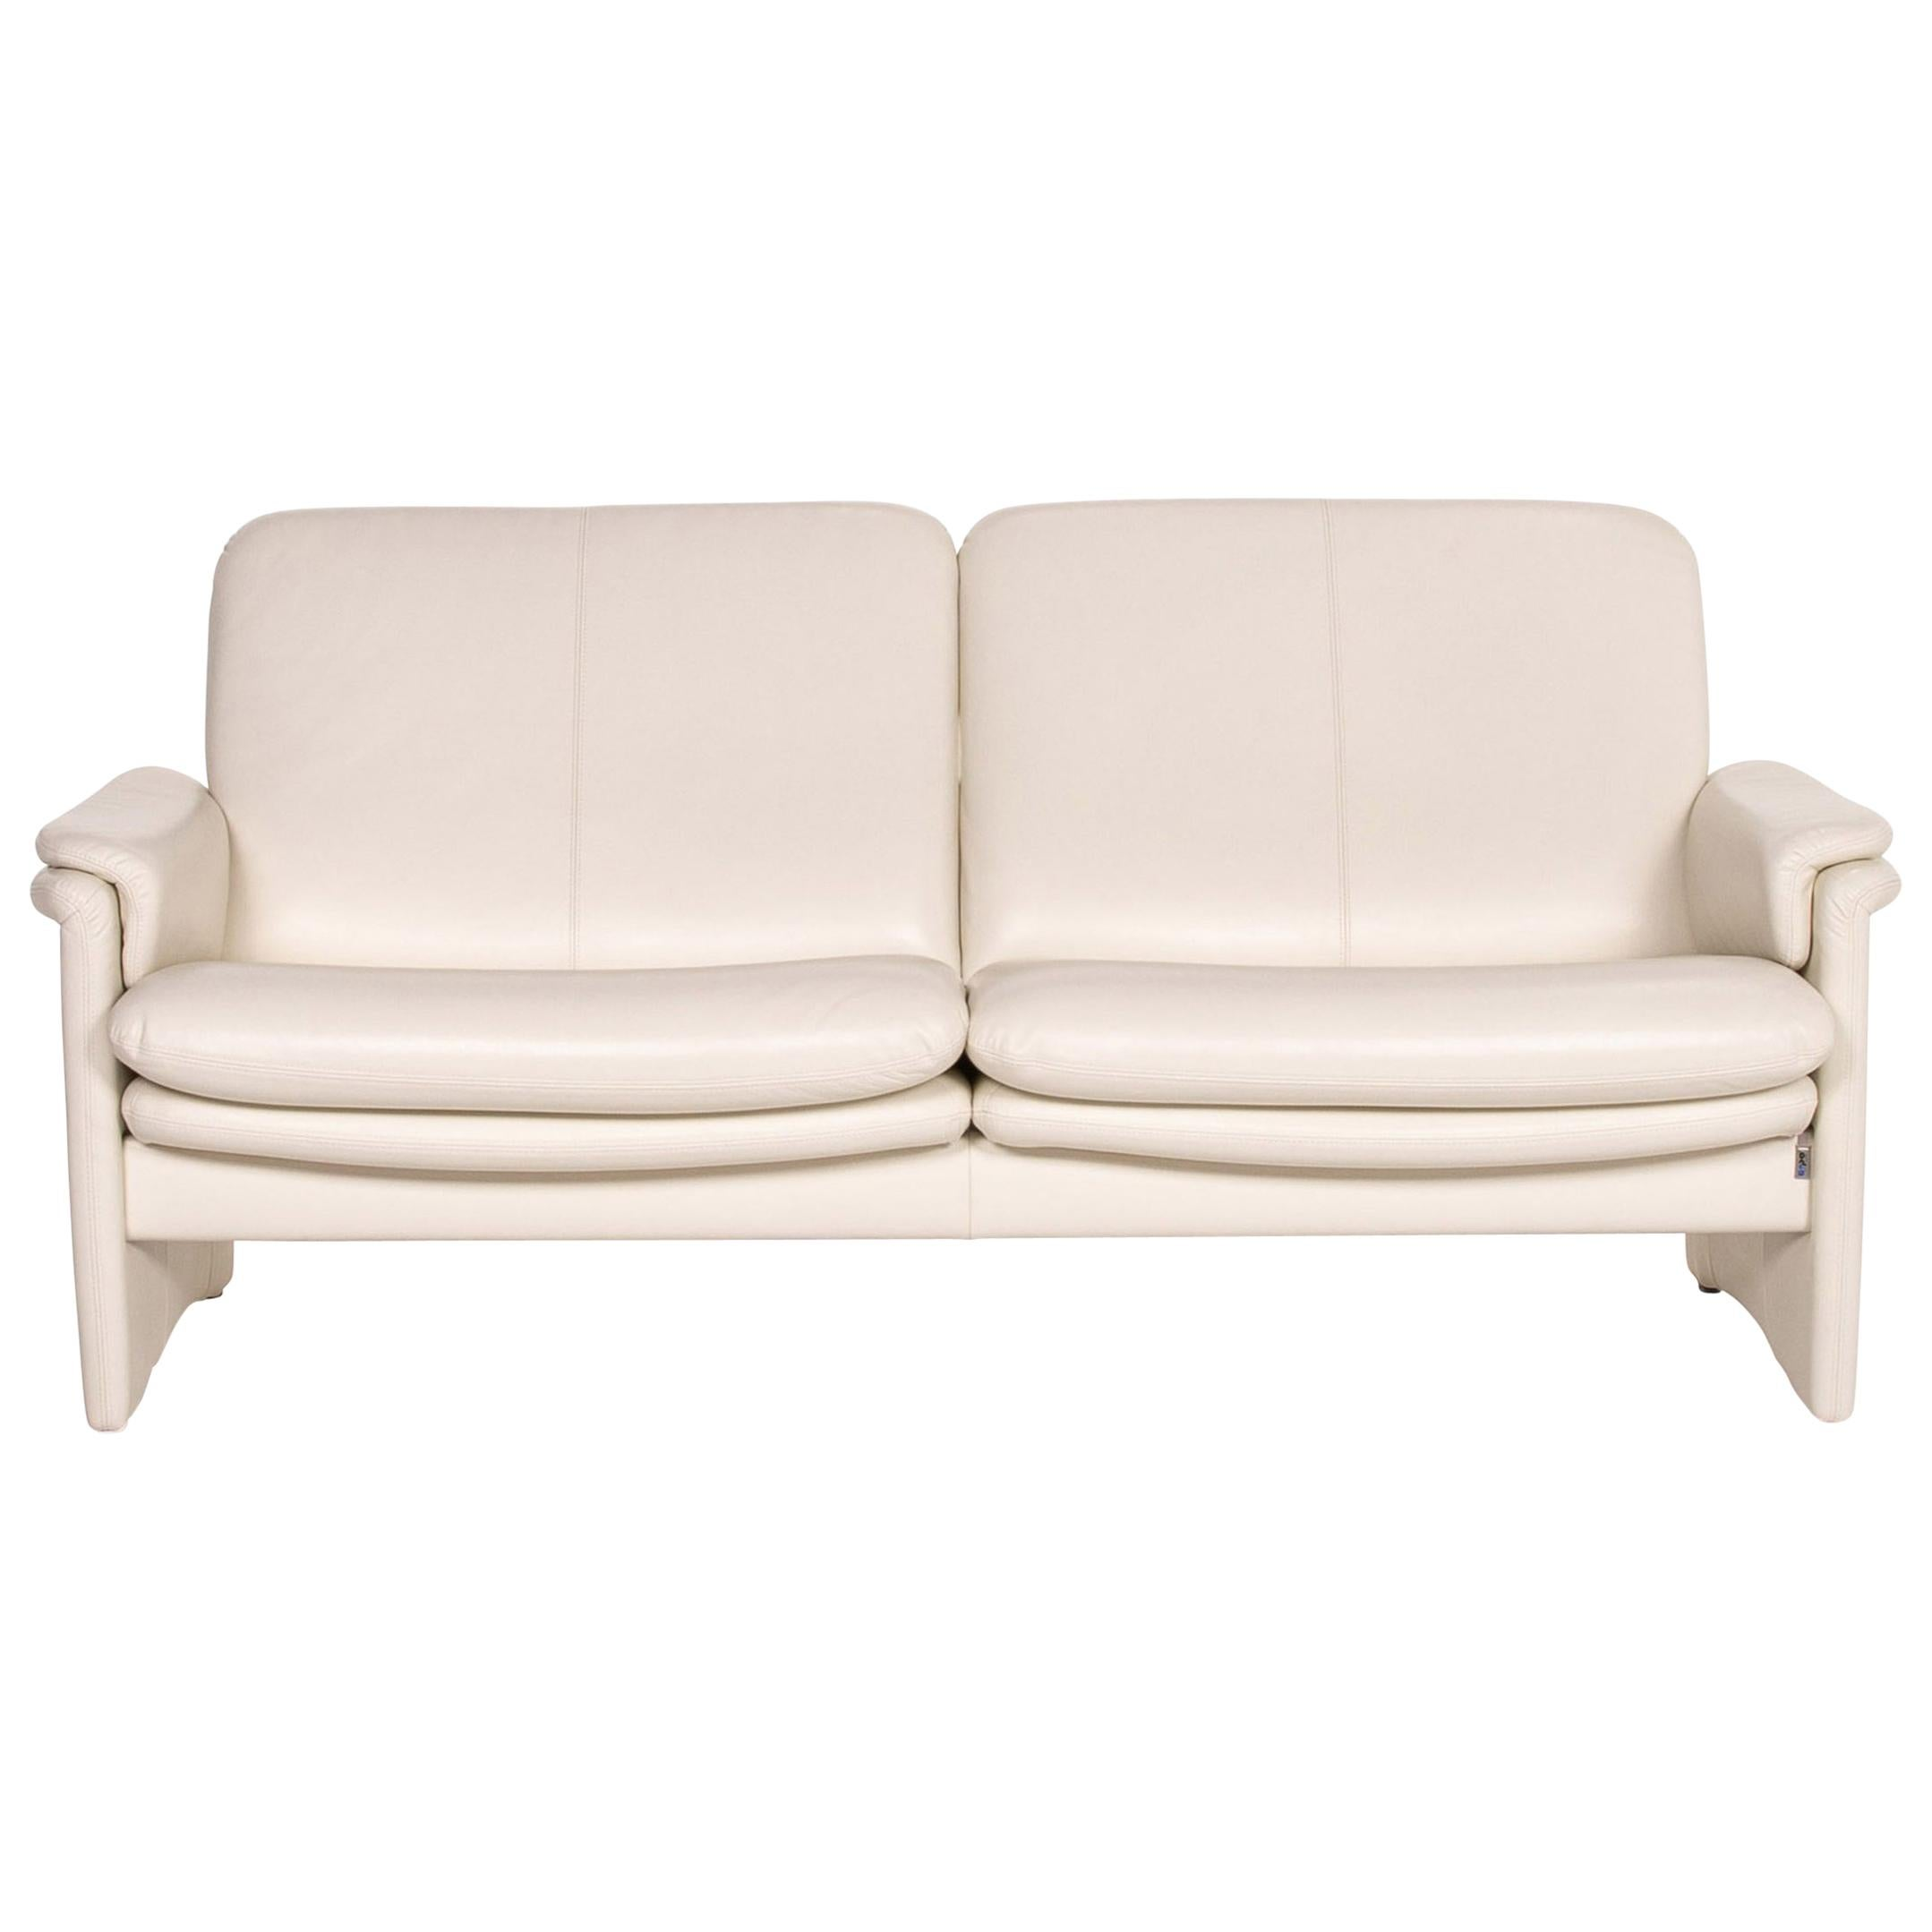 Erpo City Leather Sofa Cream Two-Seat Couch